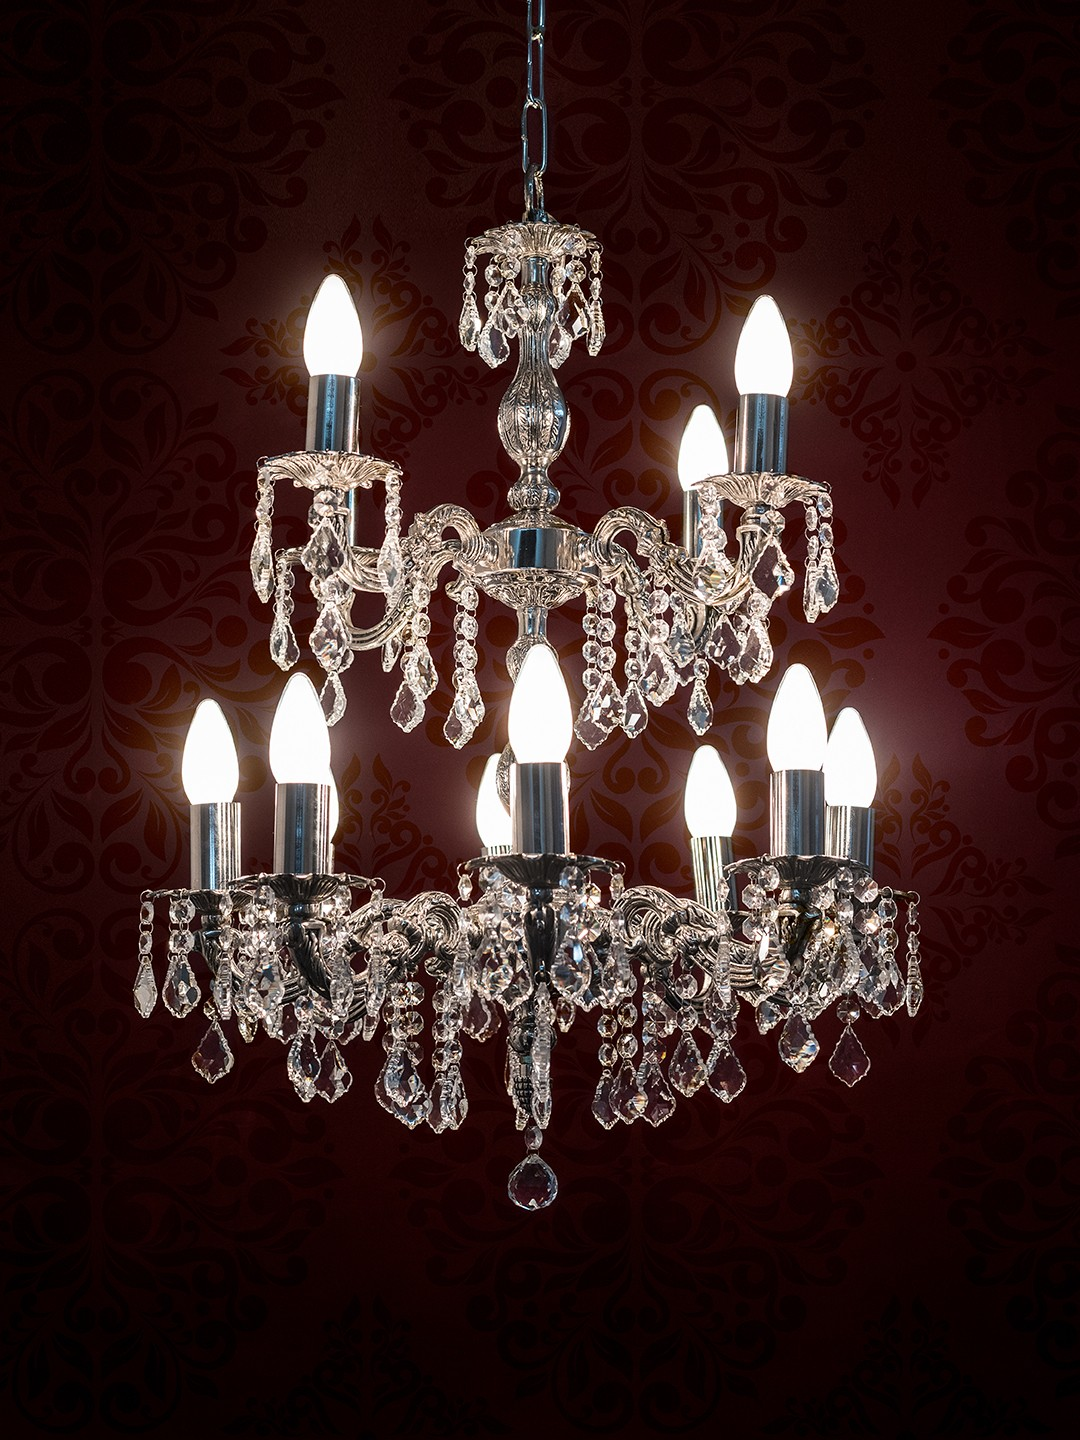 Dainty English Silver Antique Crystal 2 Tier 12 Light Chandelier